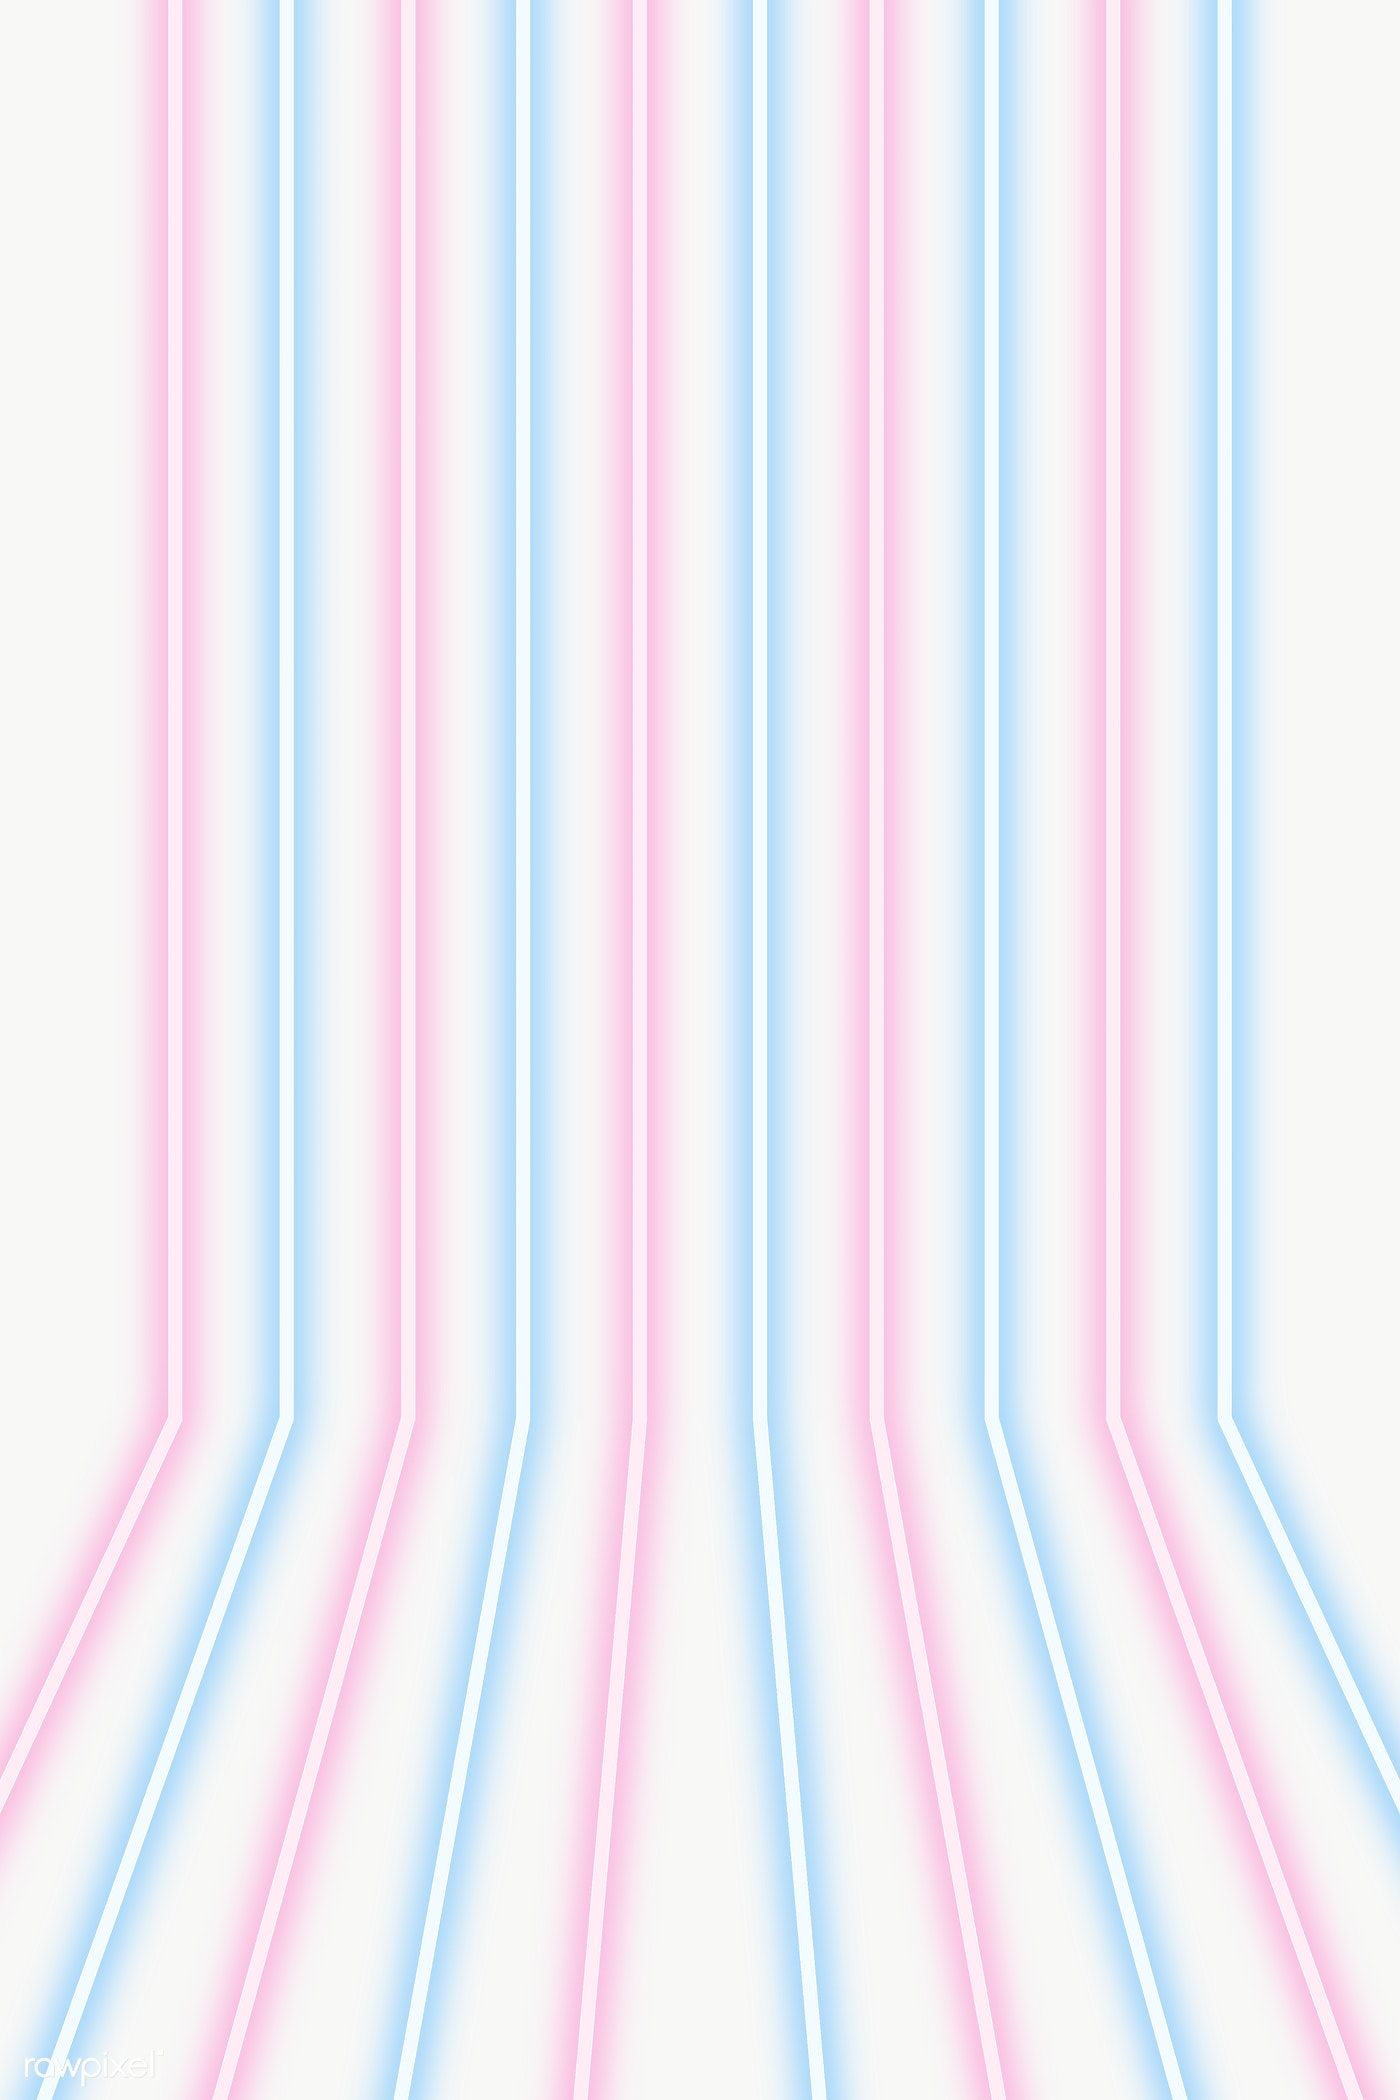 Download Premium Png Of Glowing Blue And Pink Neon Lines Patterned Background Patterns Neon Png Line Patterns